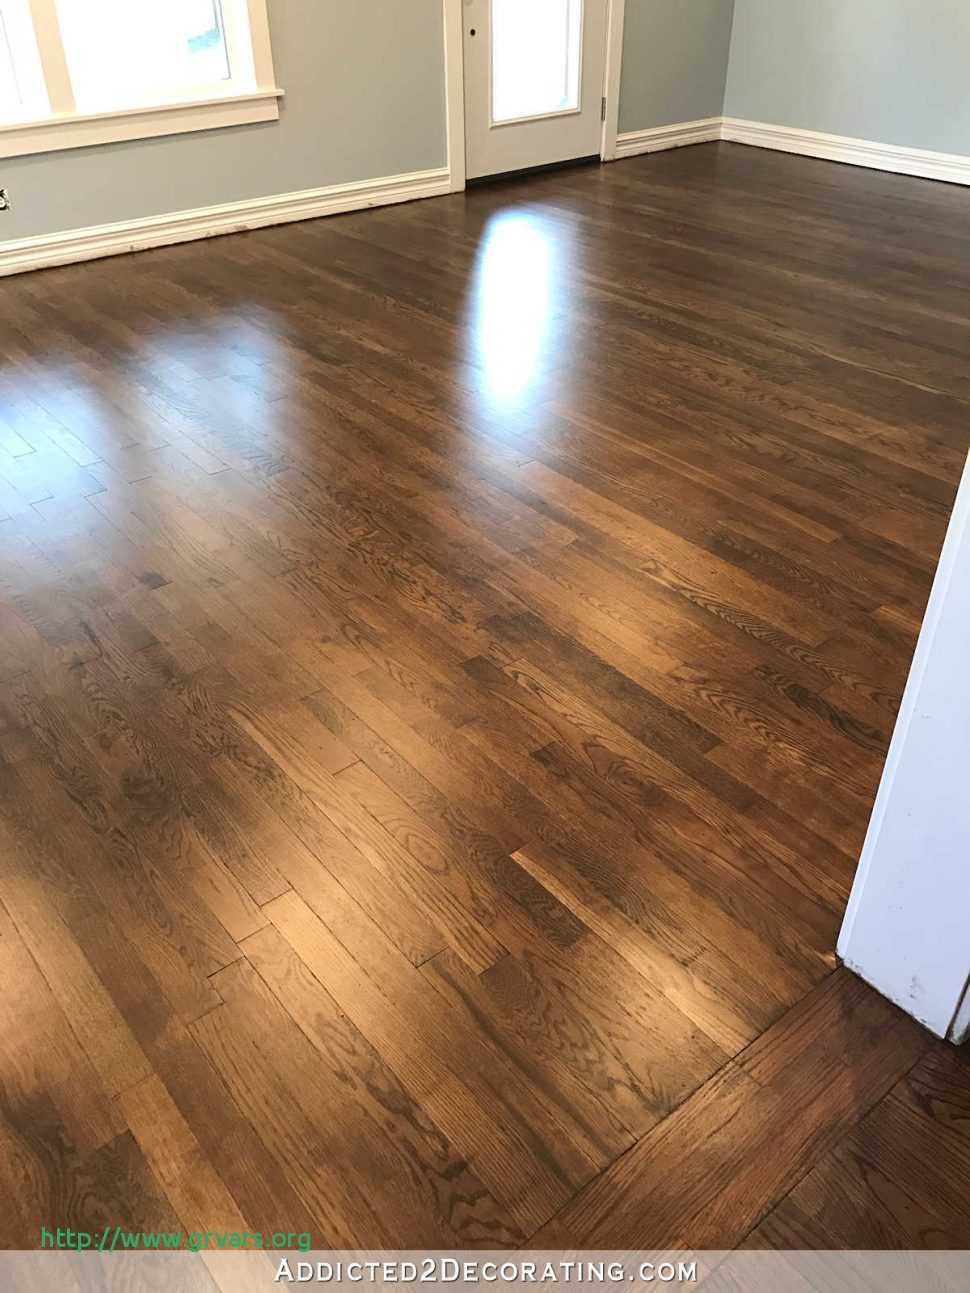 how much does restaining hardwood floors cost of how much does it cost to have hardwood floors refinished nouveau intended for how much does it cost to have hardwood floors refinished nouveau refinishing hardwood floors without sanding fix estimates refinish